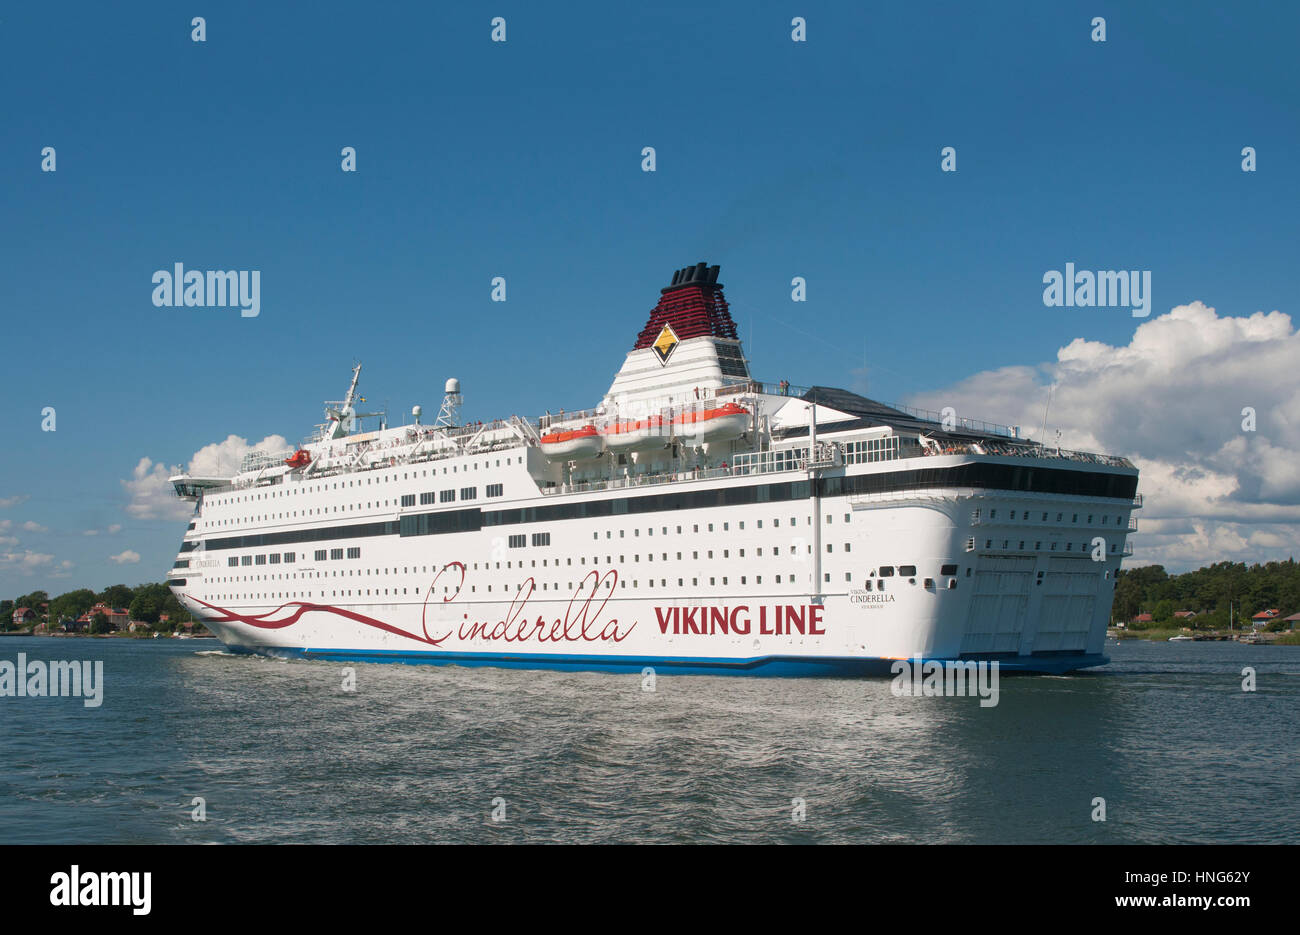 Viking Line's cruiseferry at Furusund in the Stockholm archipelago, Sweden - Stock Image